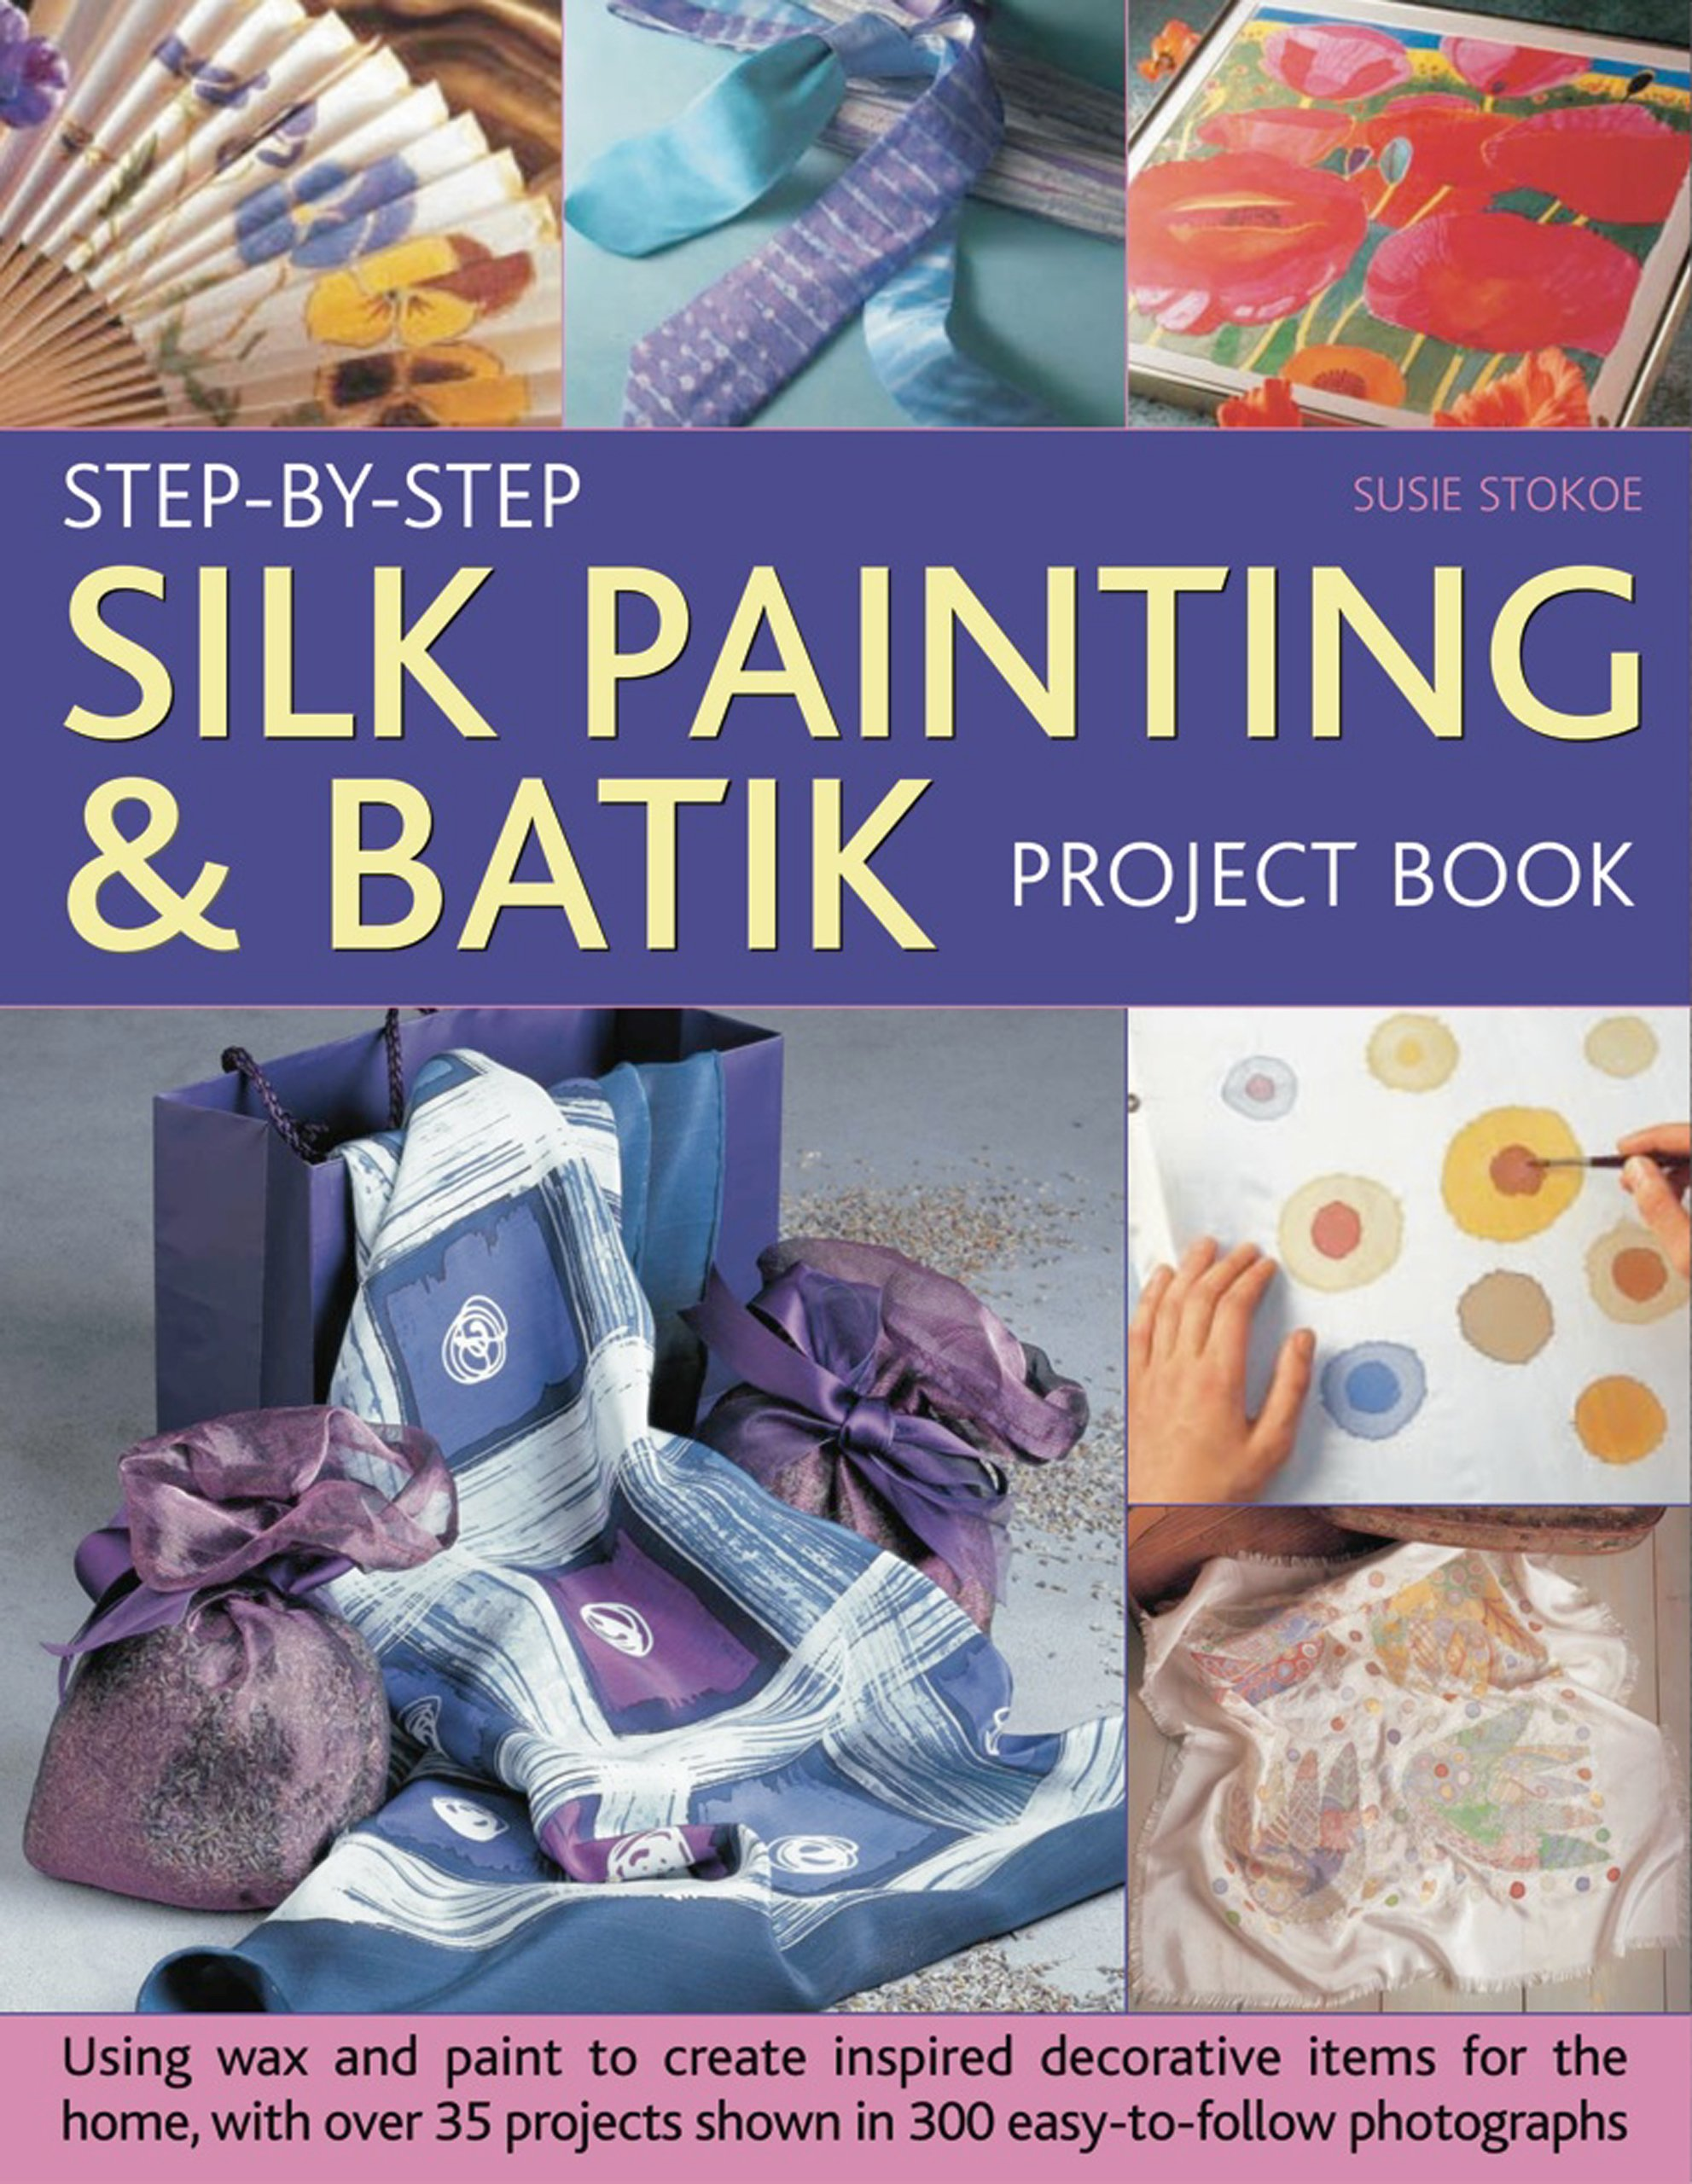 Step by Step Silk Painting   Batik Project Book  Inspired and decorative  projects to make for the home  Susie Stokoe  9781844767724  Amazon com   Books. Step by Step Silk Painting   Batik Project Book  Inspired and